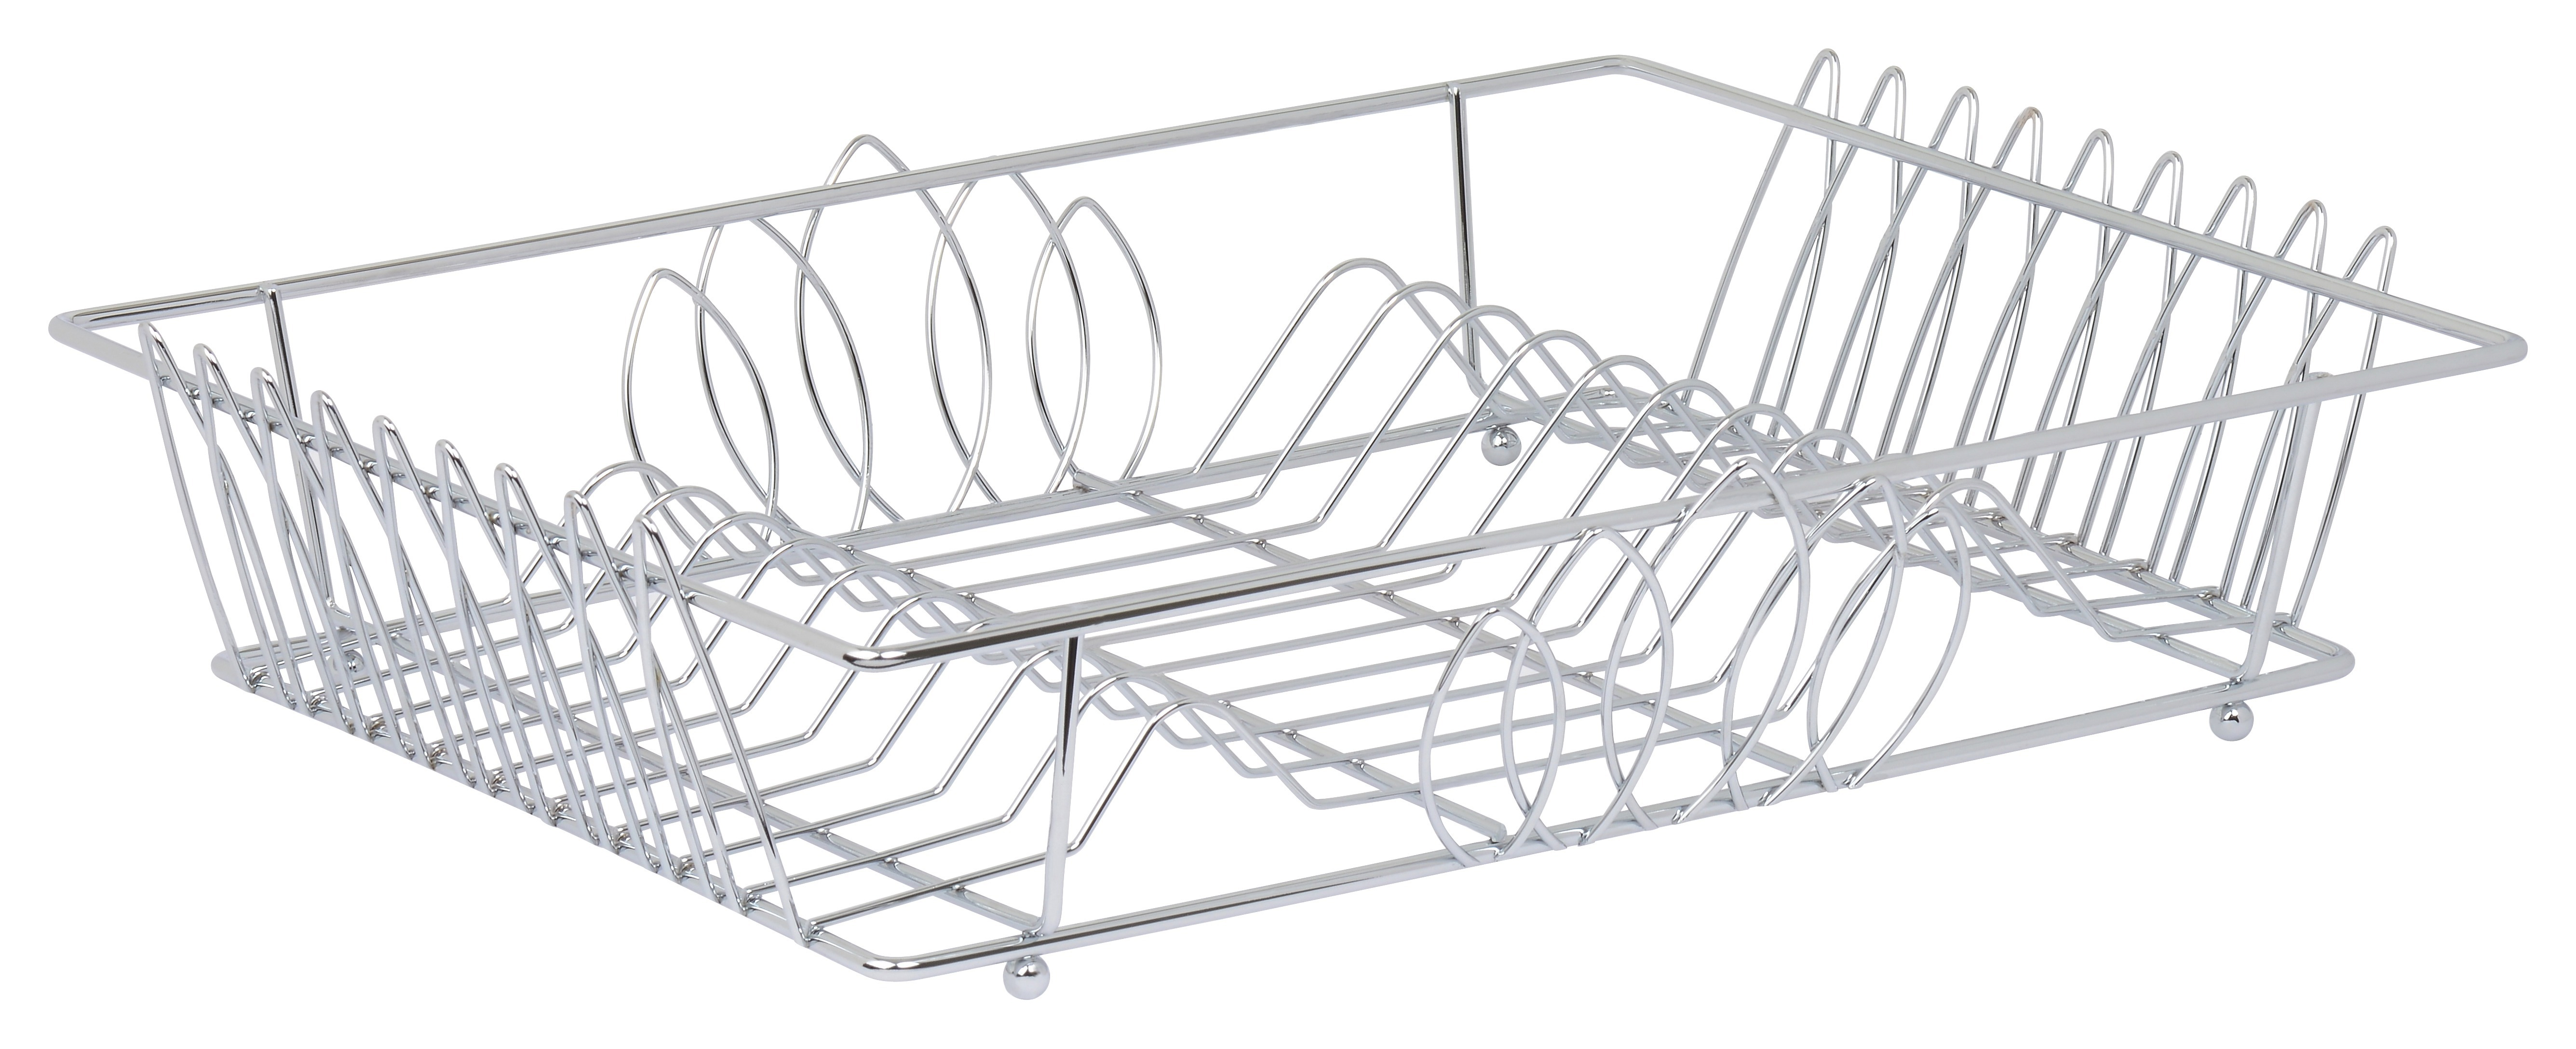 Dish Rack - High Quality Stainless Steel with Shiny Chrome Polish